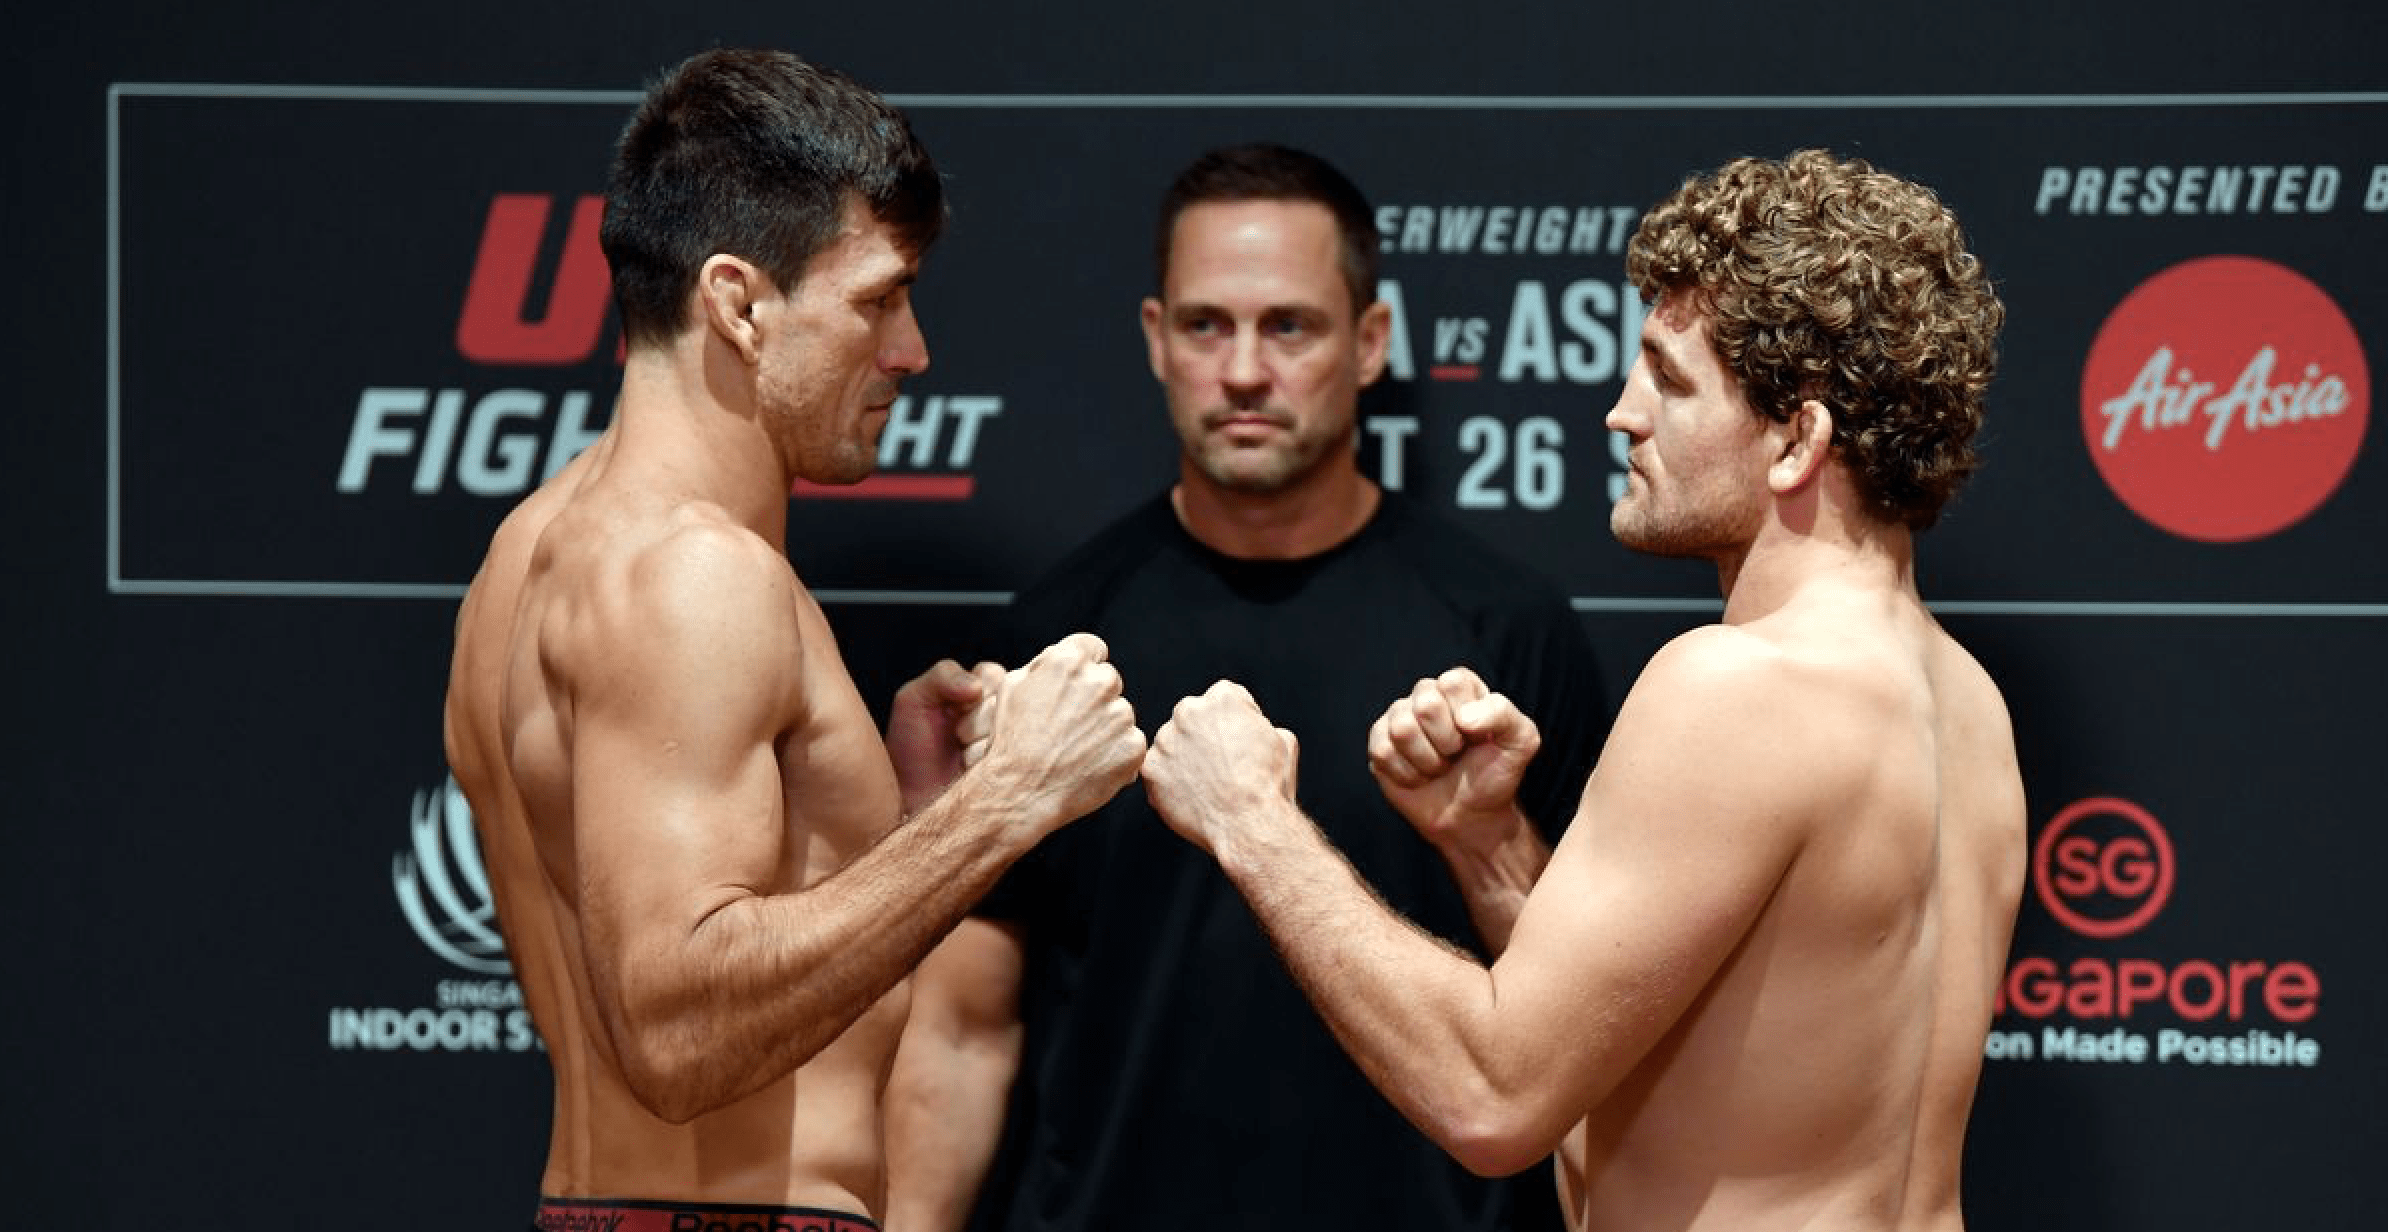 UFC Singapore Results: Maia vs Askren